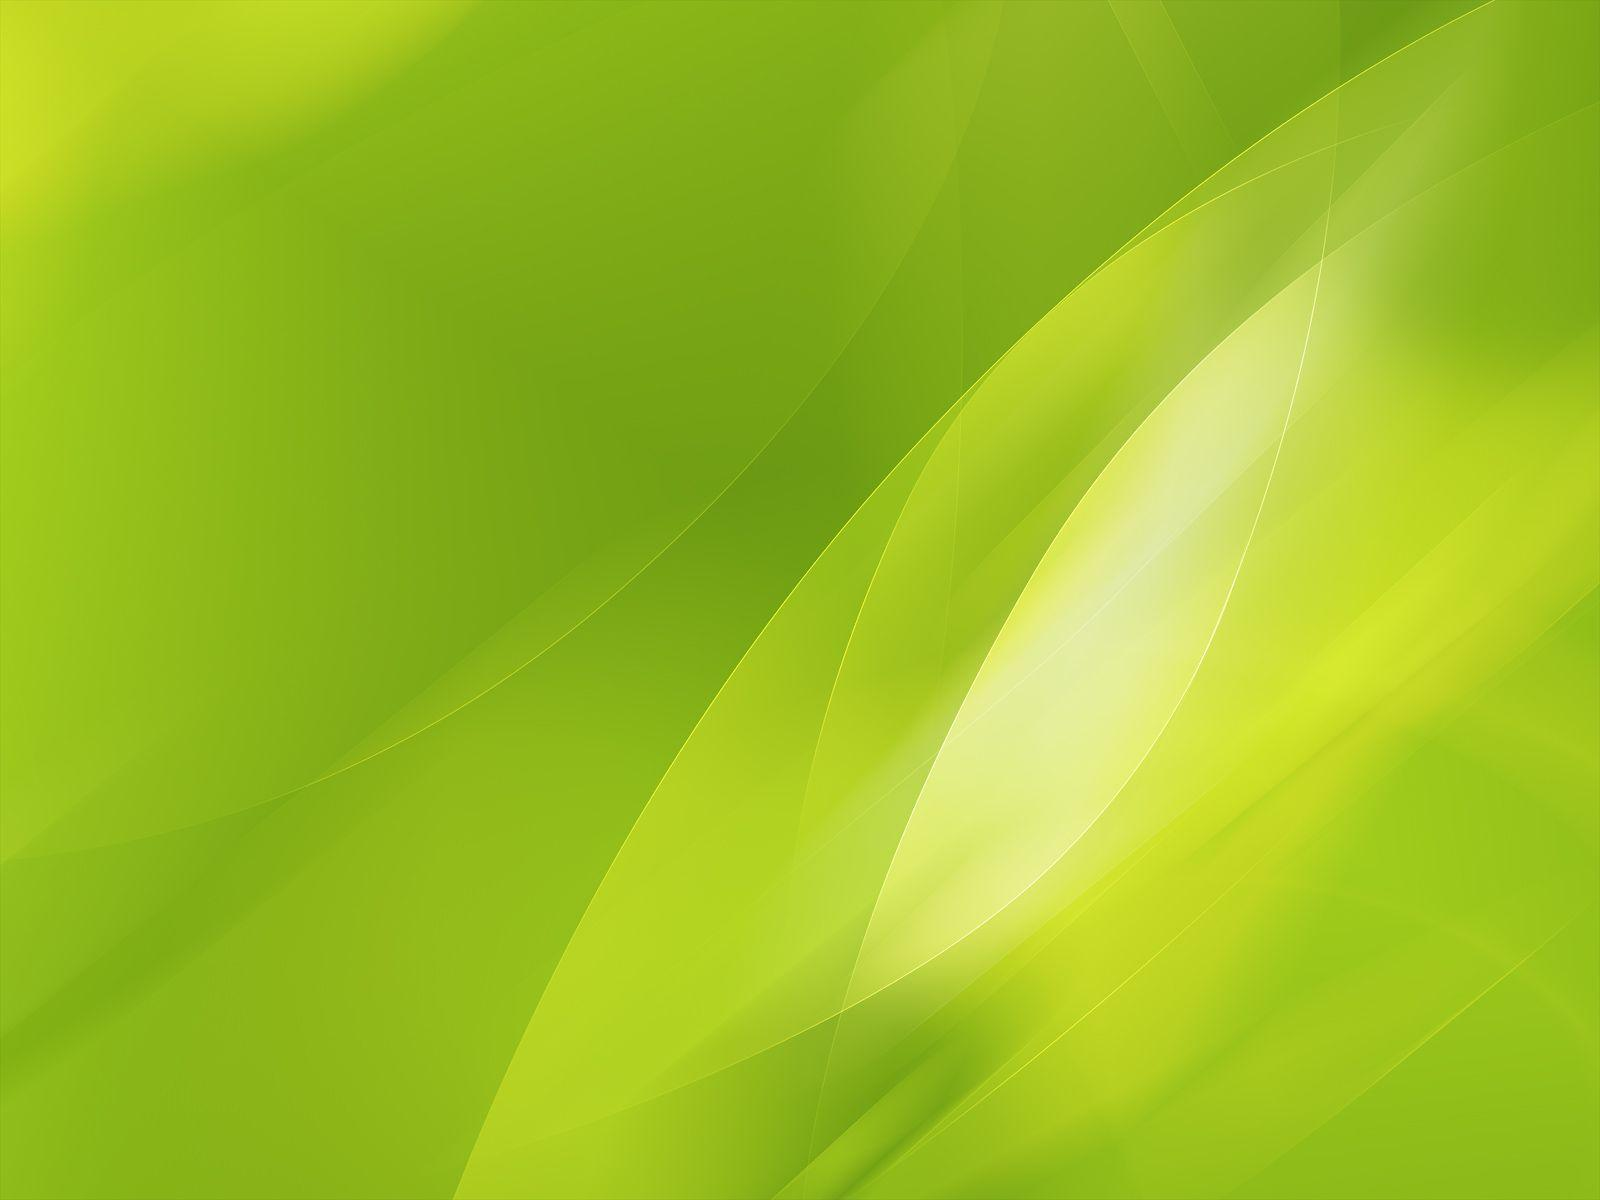 Wallpapers For Plain Neon Green Background